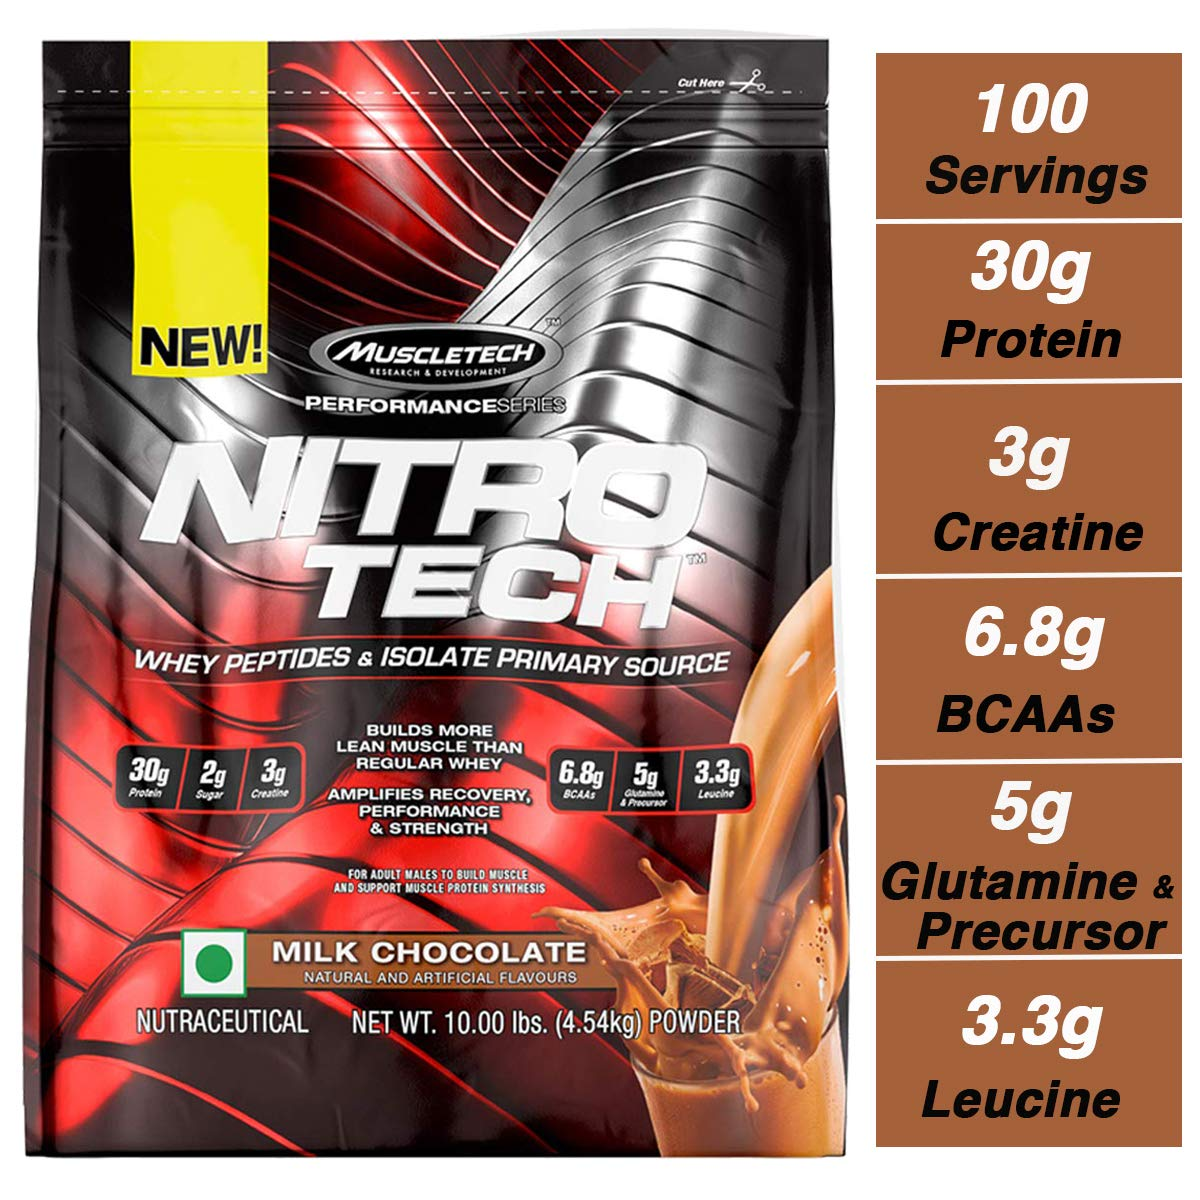 MuscleTech NitroTech Protein Powder Plus Muscle Builder, 100% Whey Protein with Whey Isolate, Milk Chocolate, 103 Servings (10lbs) by MuscleTech (Image #1)